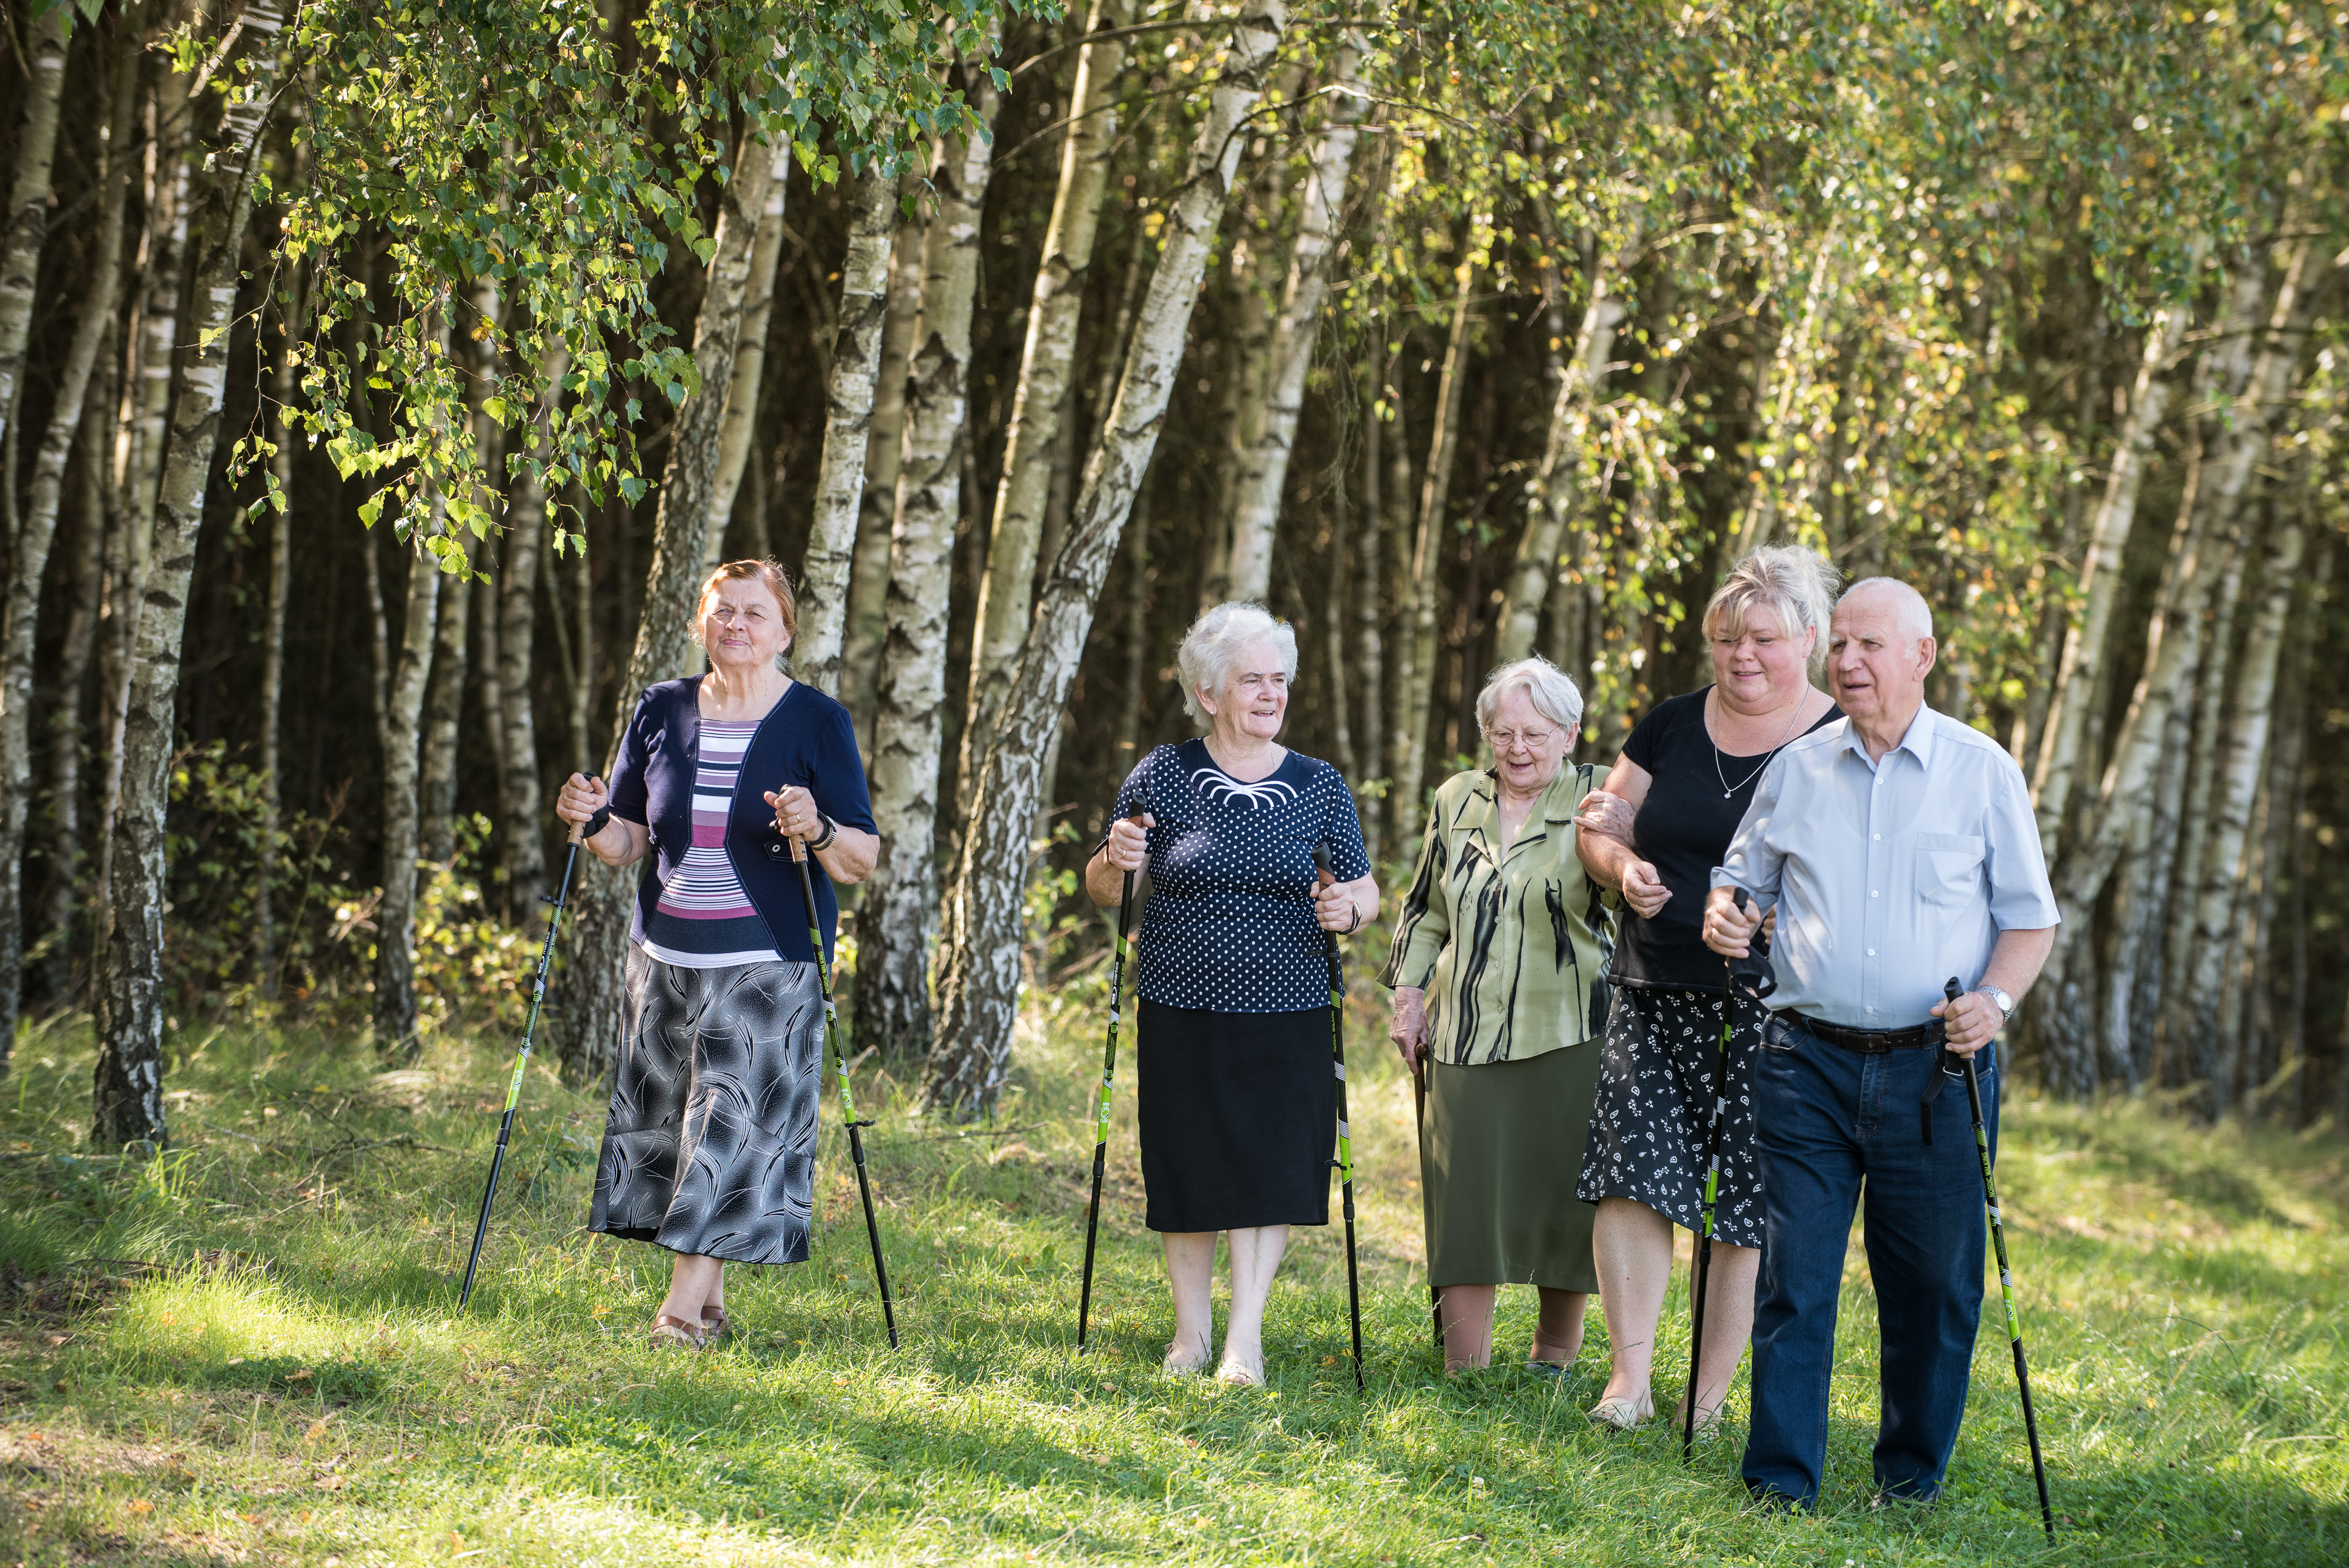 The photo presents a group of seniors walking in a birch forest.